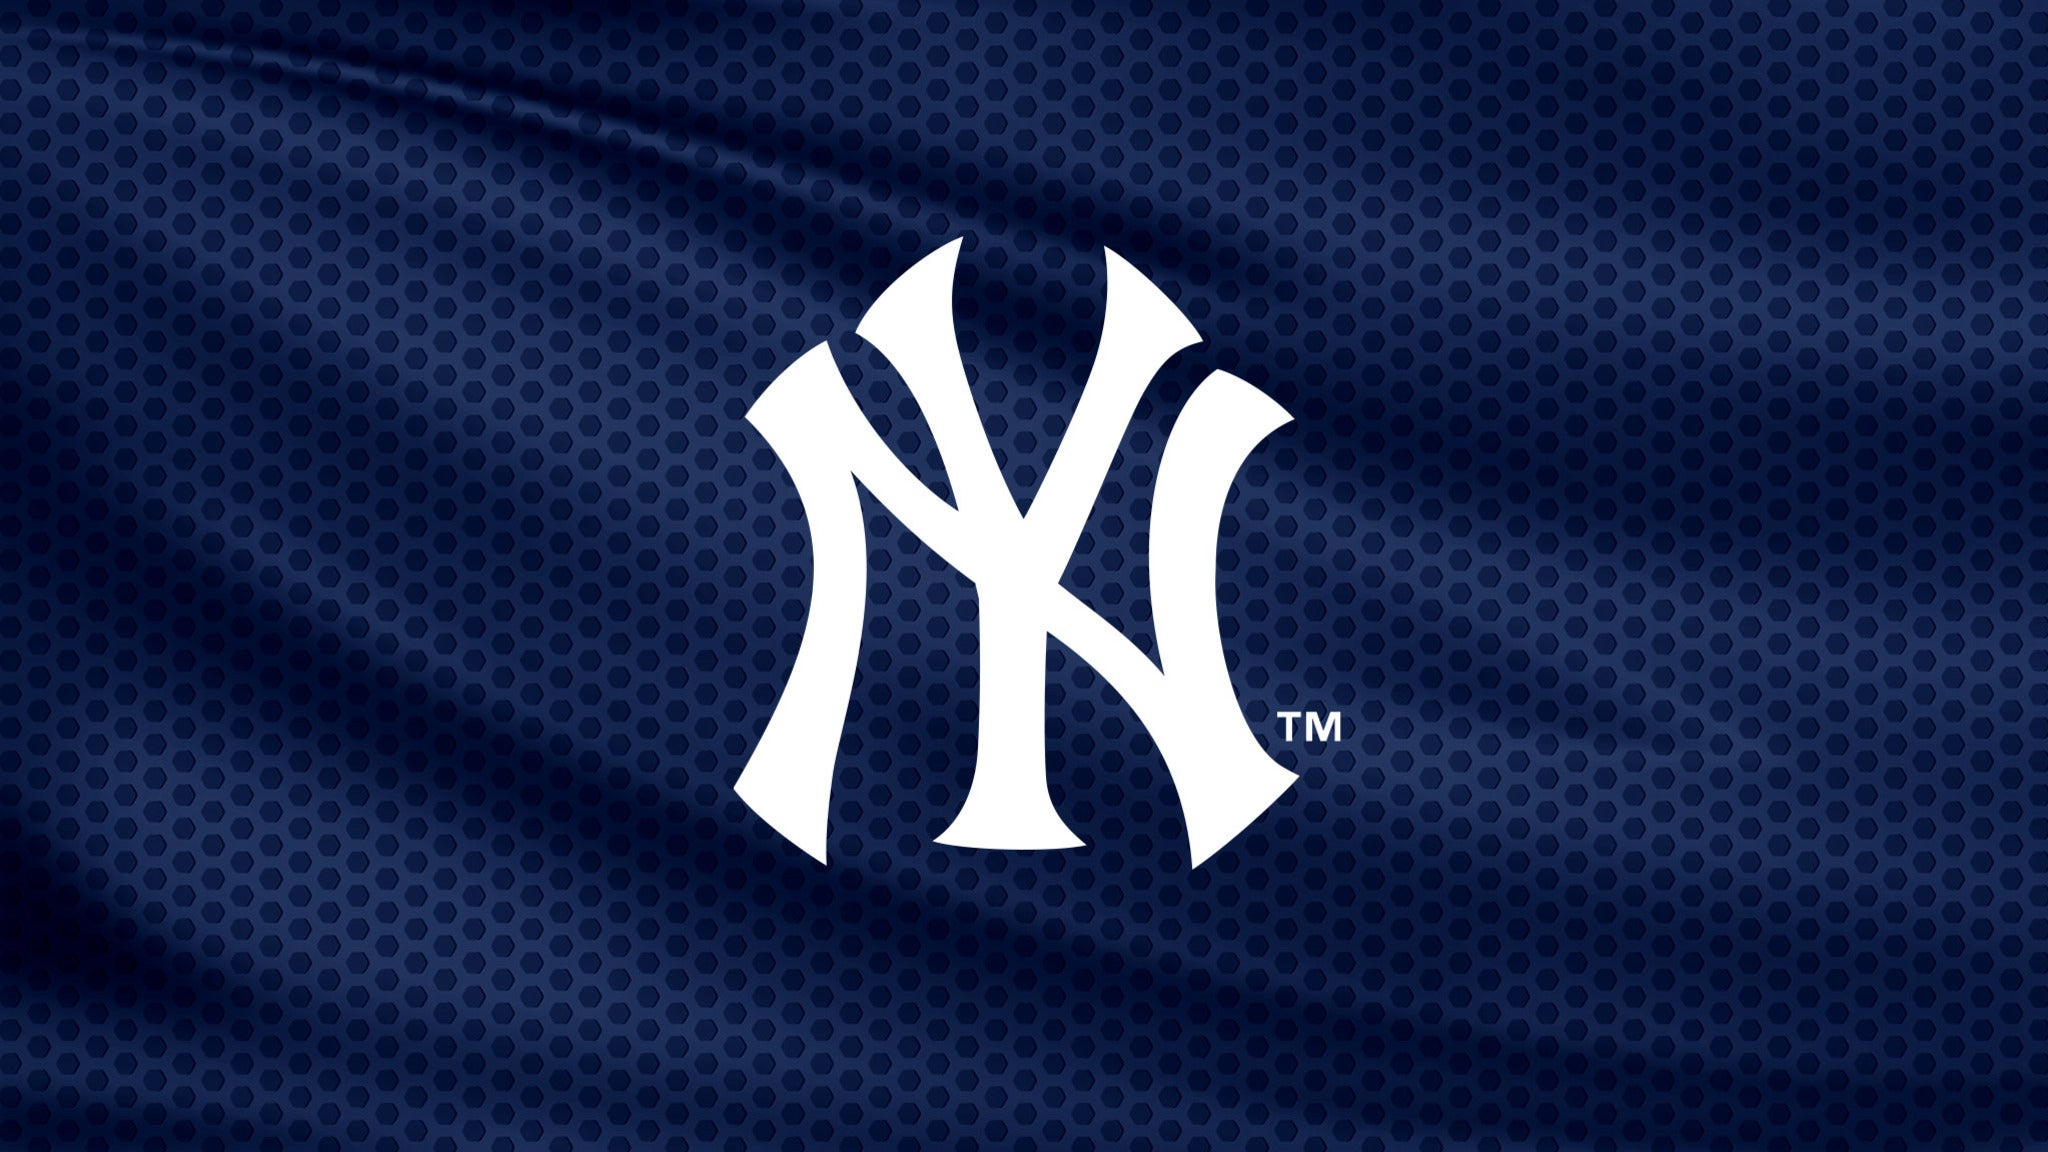 NYY and their 2021 struggles - What is going on?